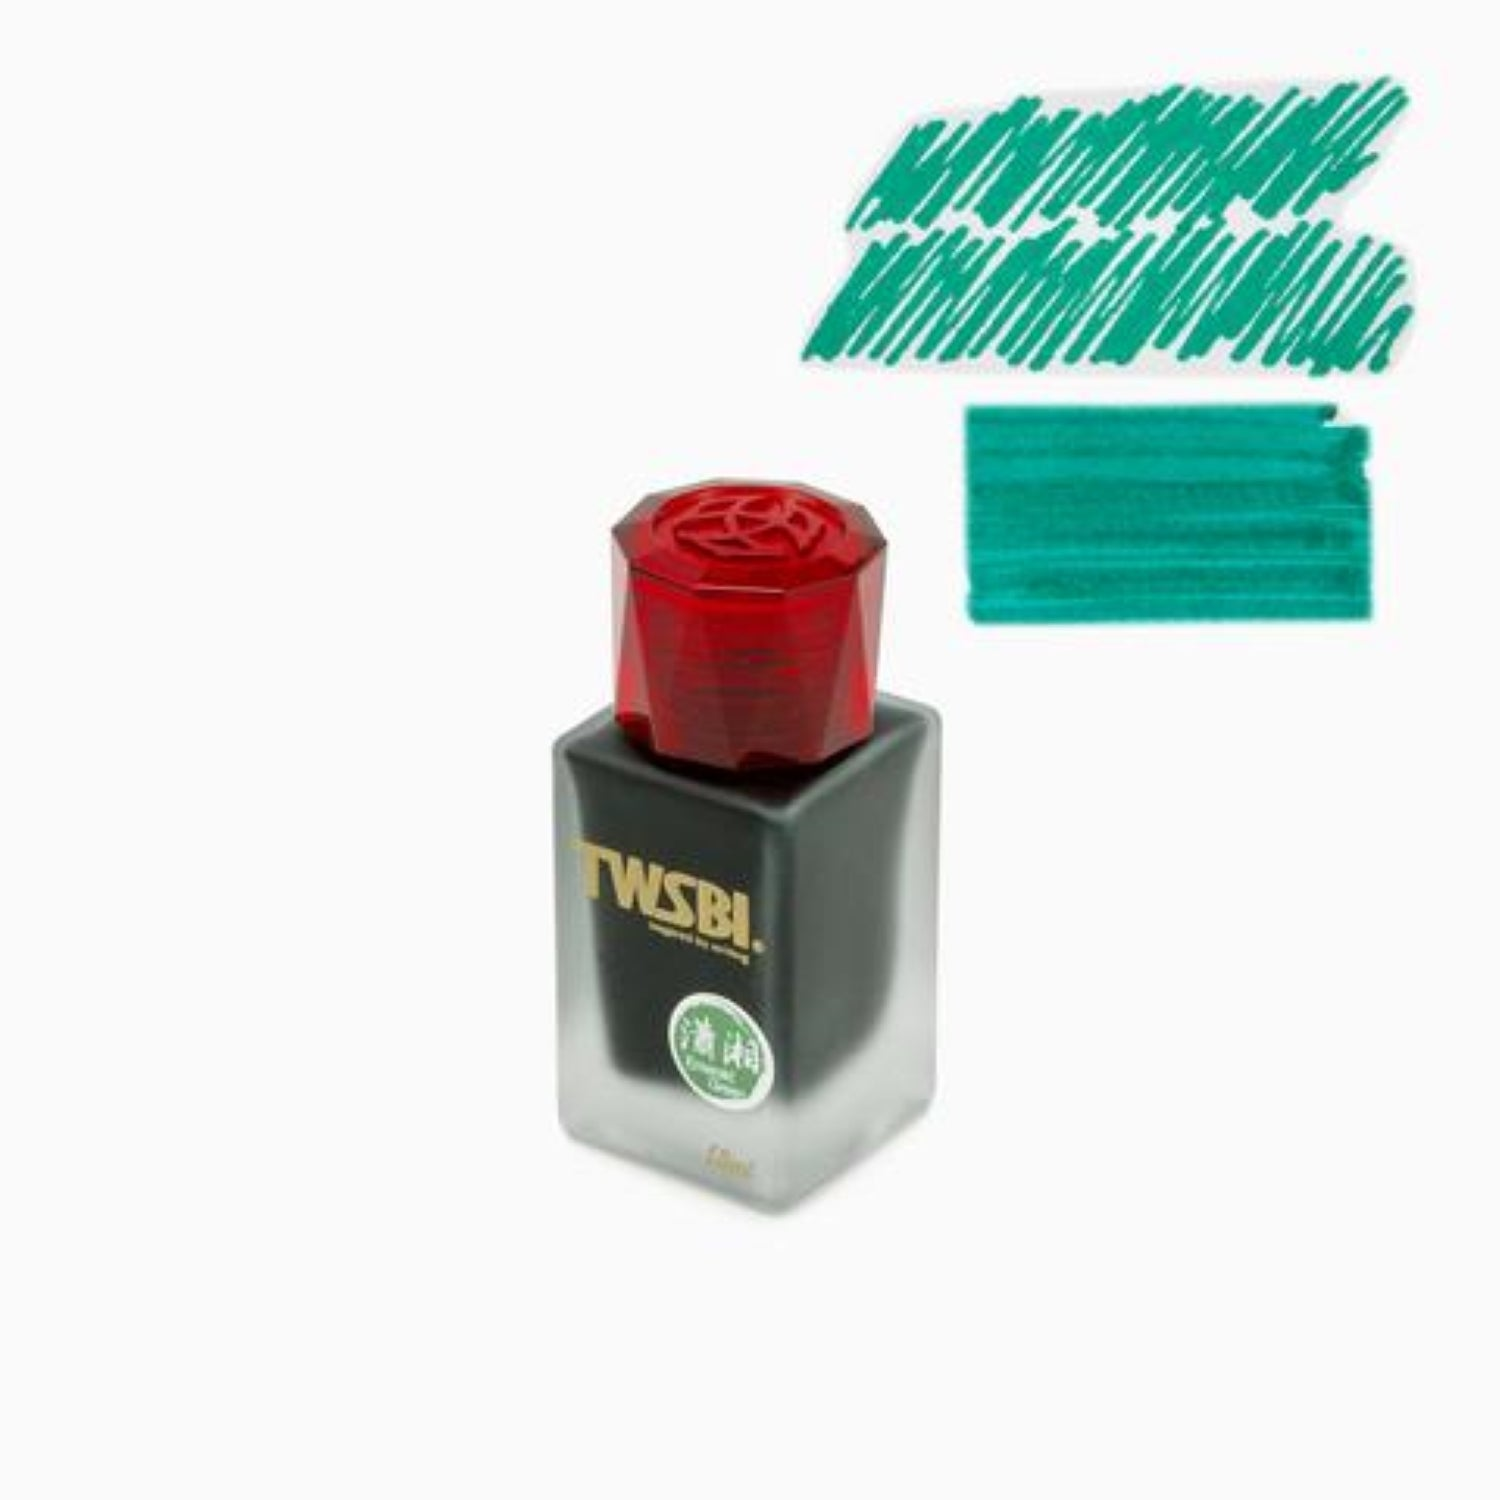 TWSBI 1791 Ink - Emerald Green 18ml